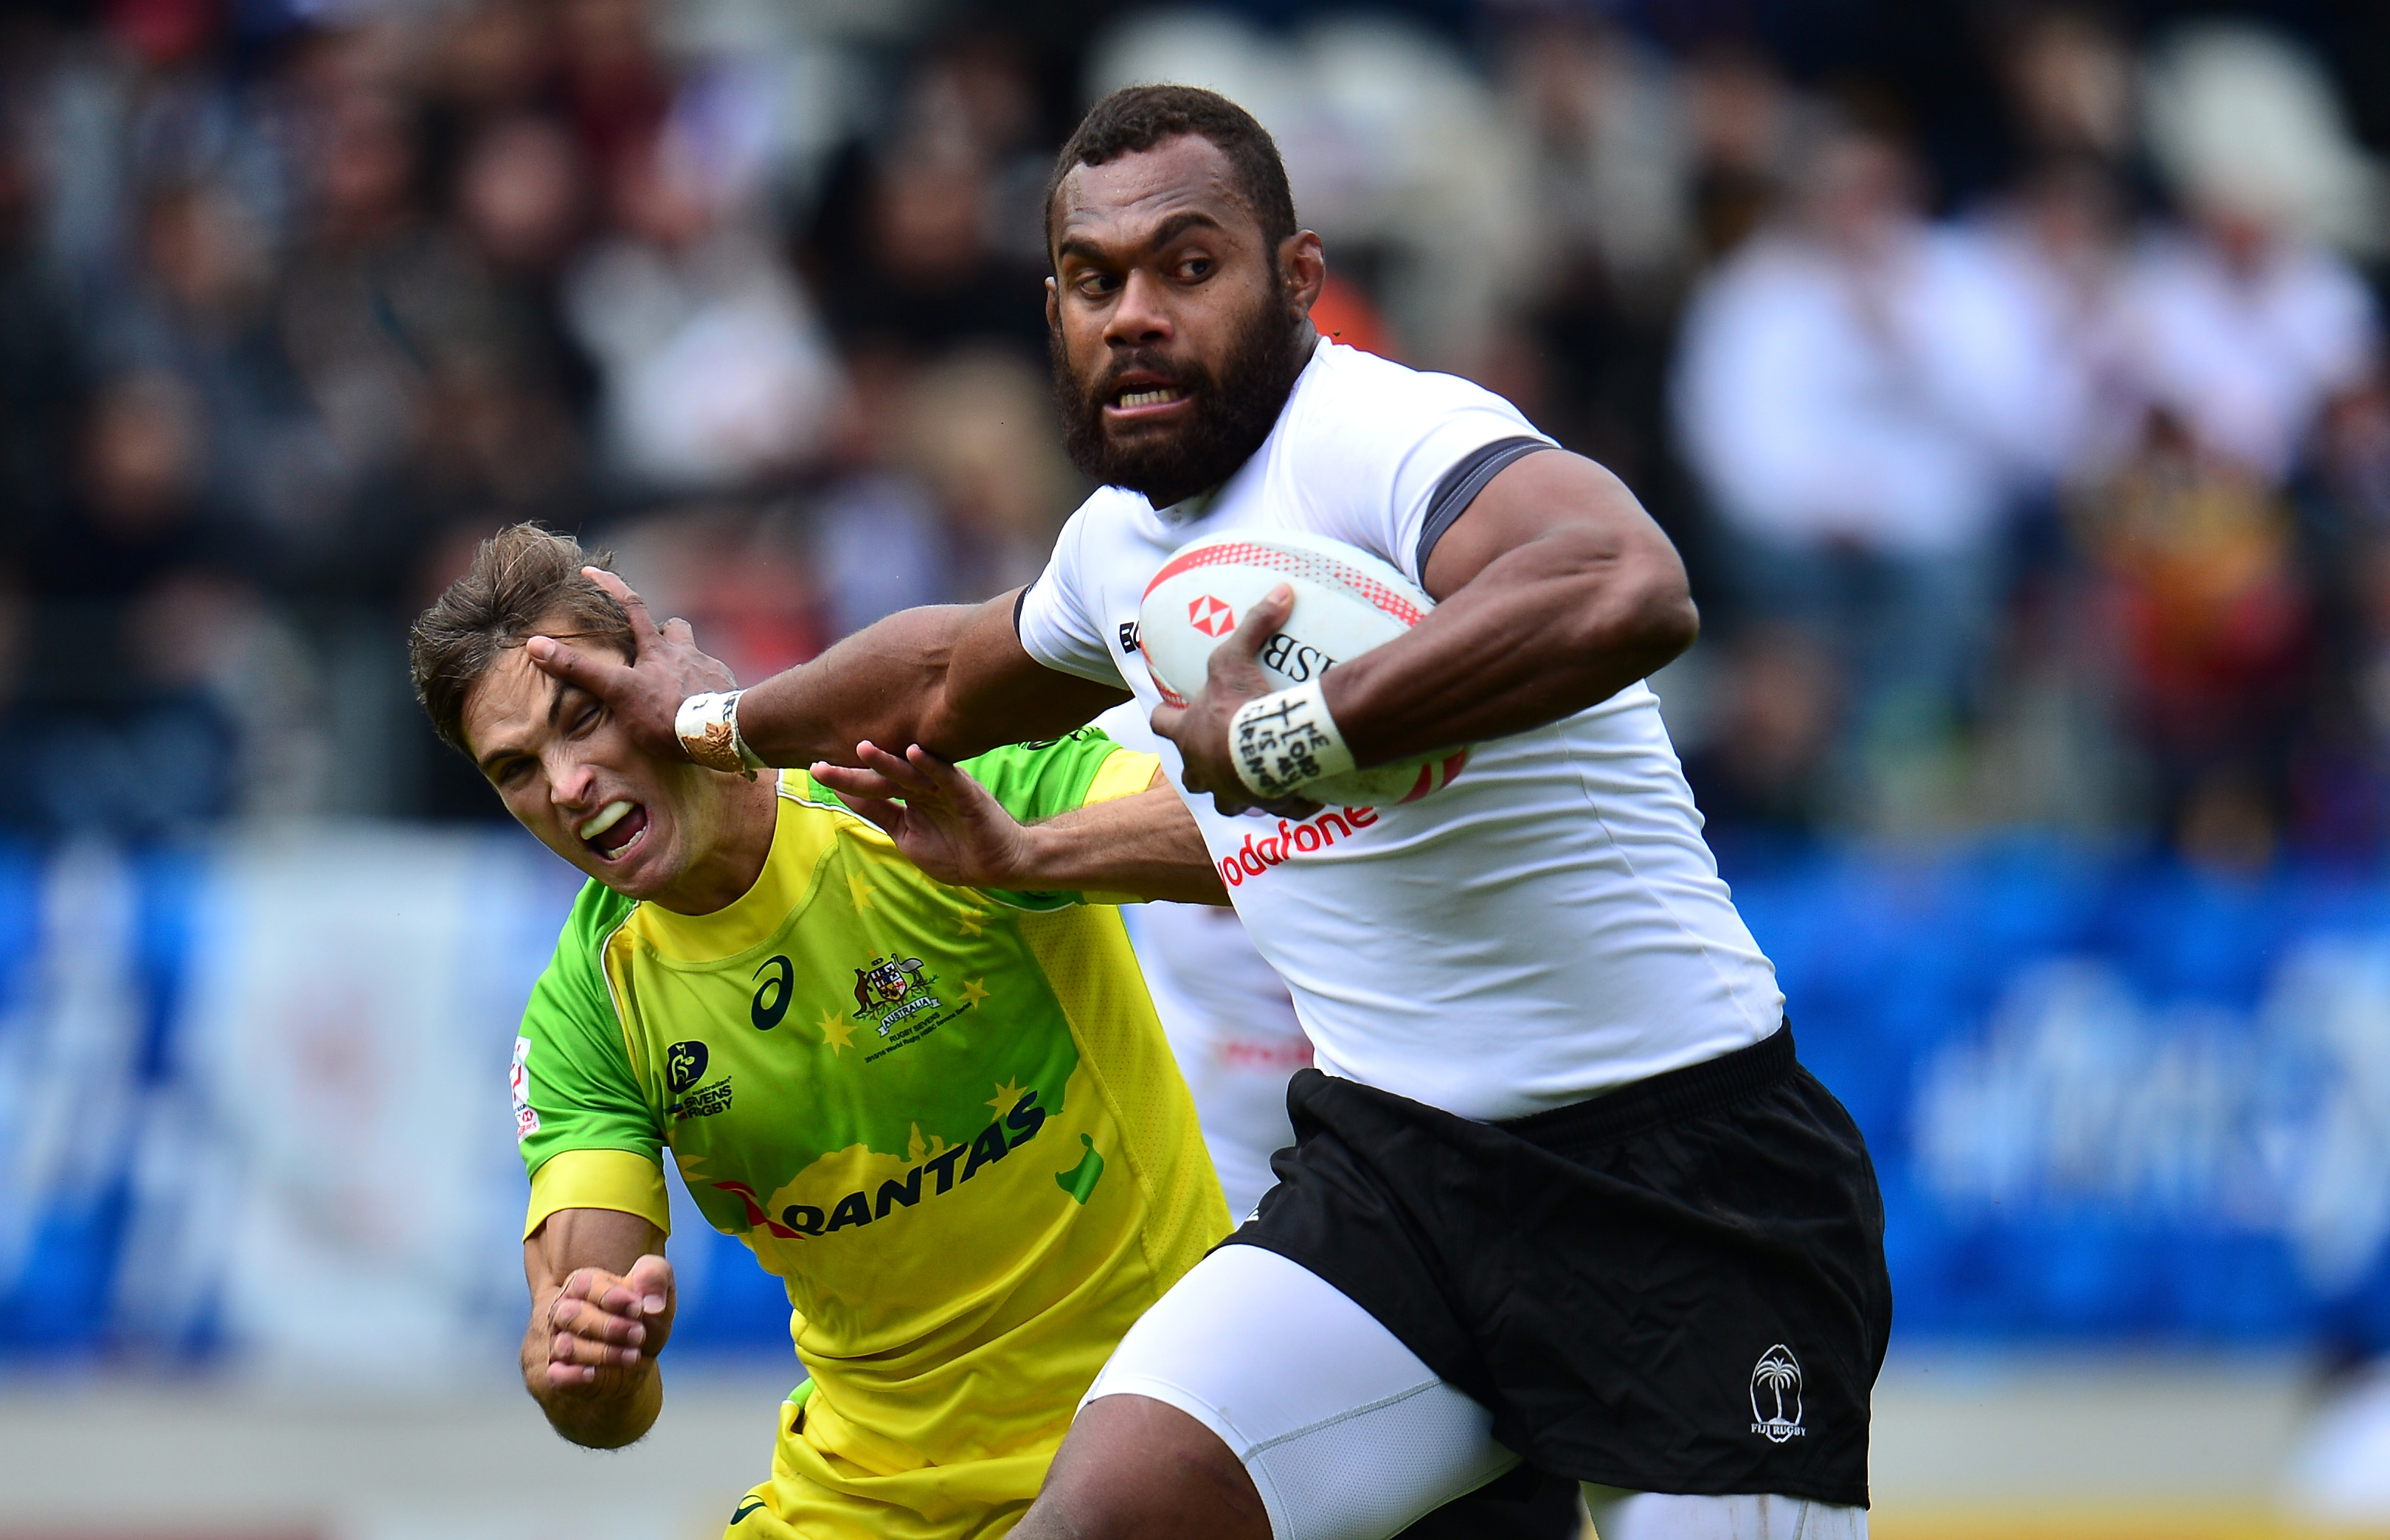 Osea Kolinisau of Fiji wards off Edward Jenkins of Australia during the Cup Quarter Final match between Fiji and Australia on day three of the HSBC Paris Sevens at the Stade Jean Bouin on May 15, 2016 in Paris, France.